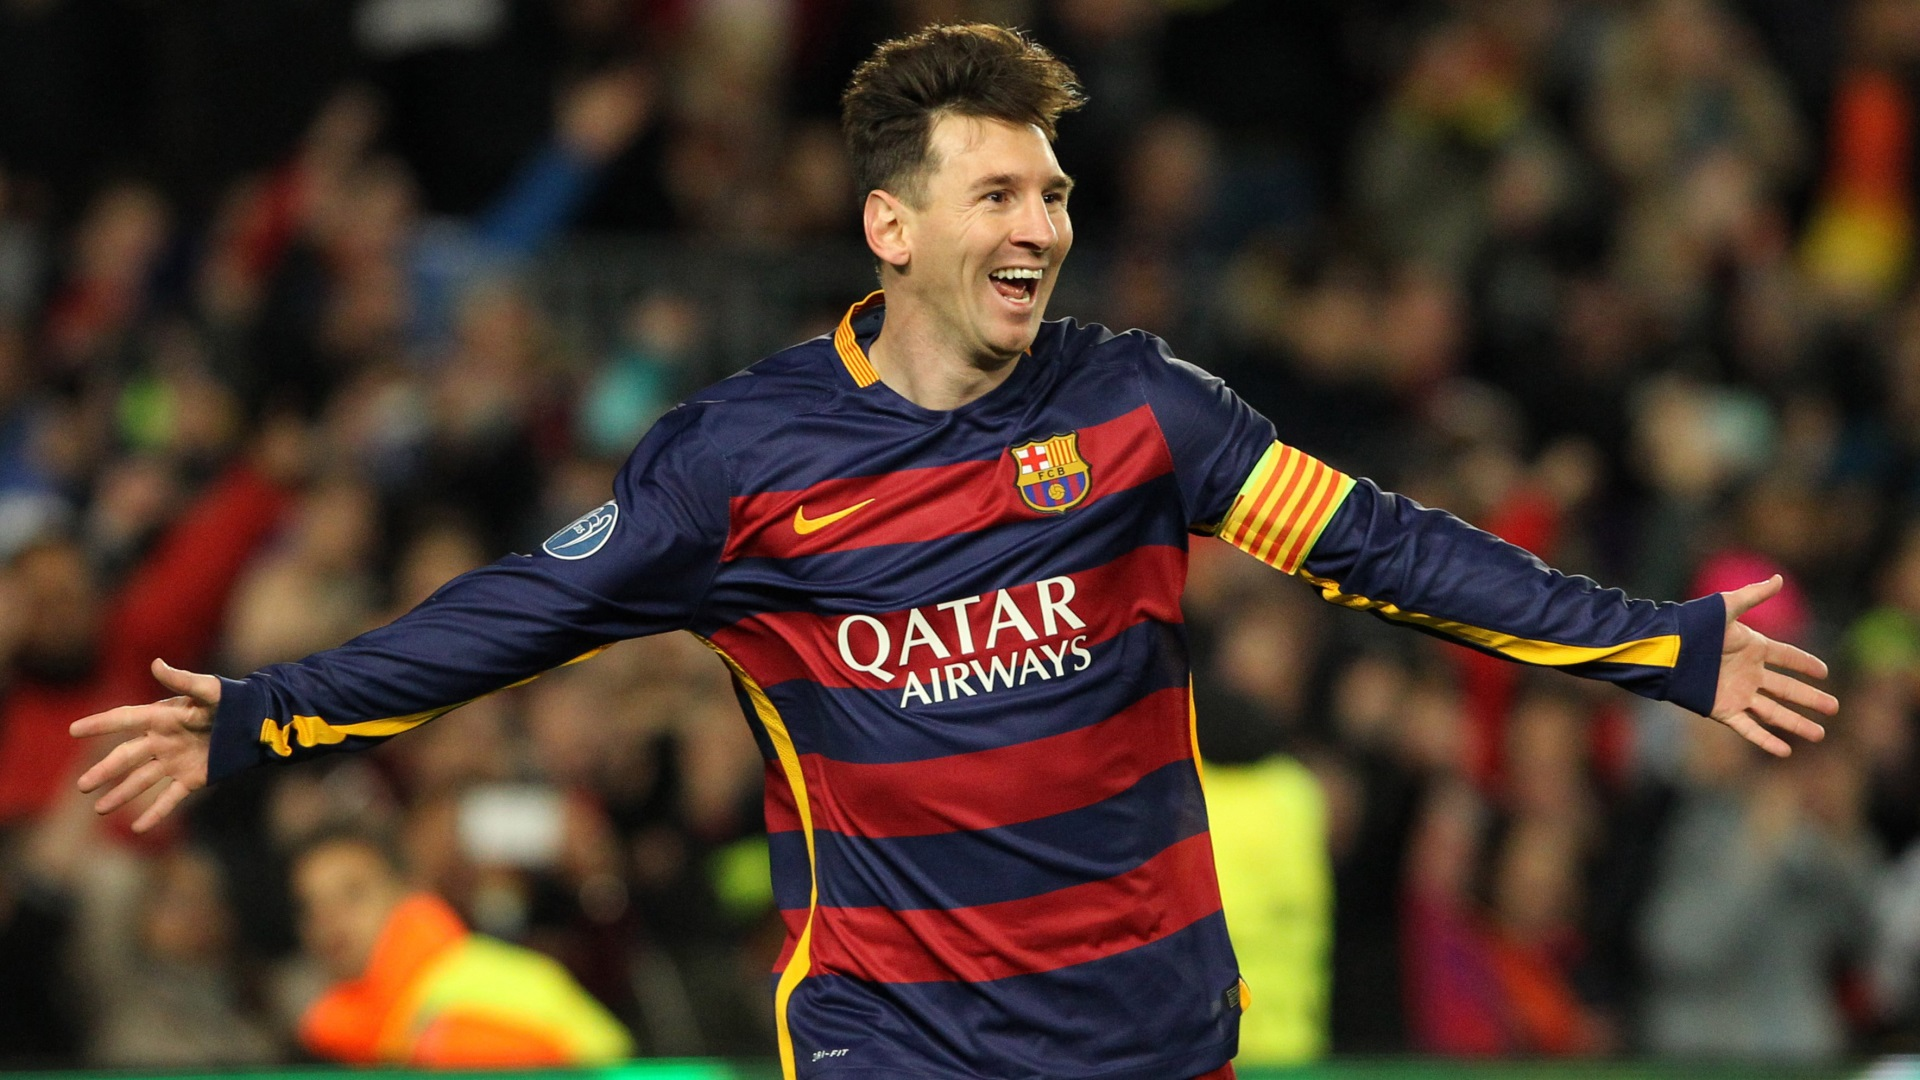 Football Messi Images Hd , HD Wallpaper & Backgrounds